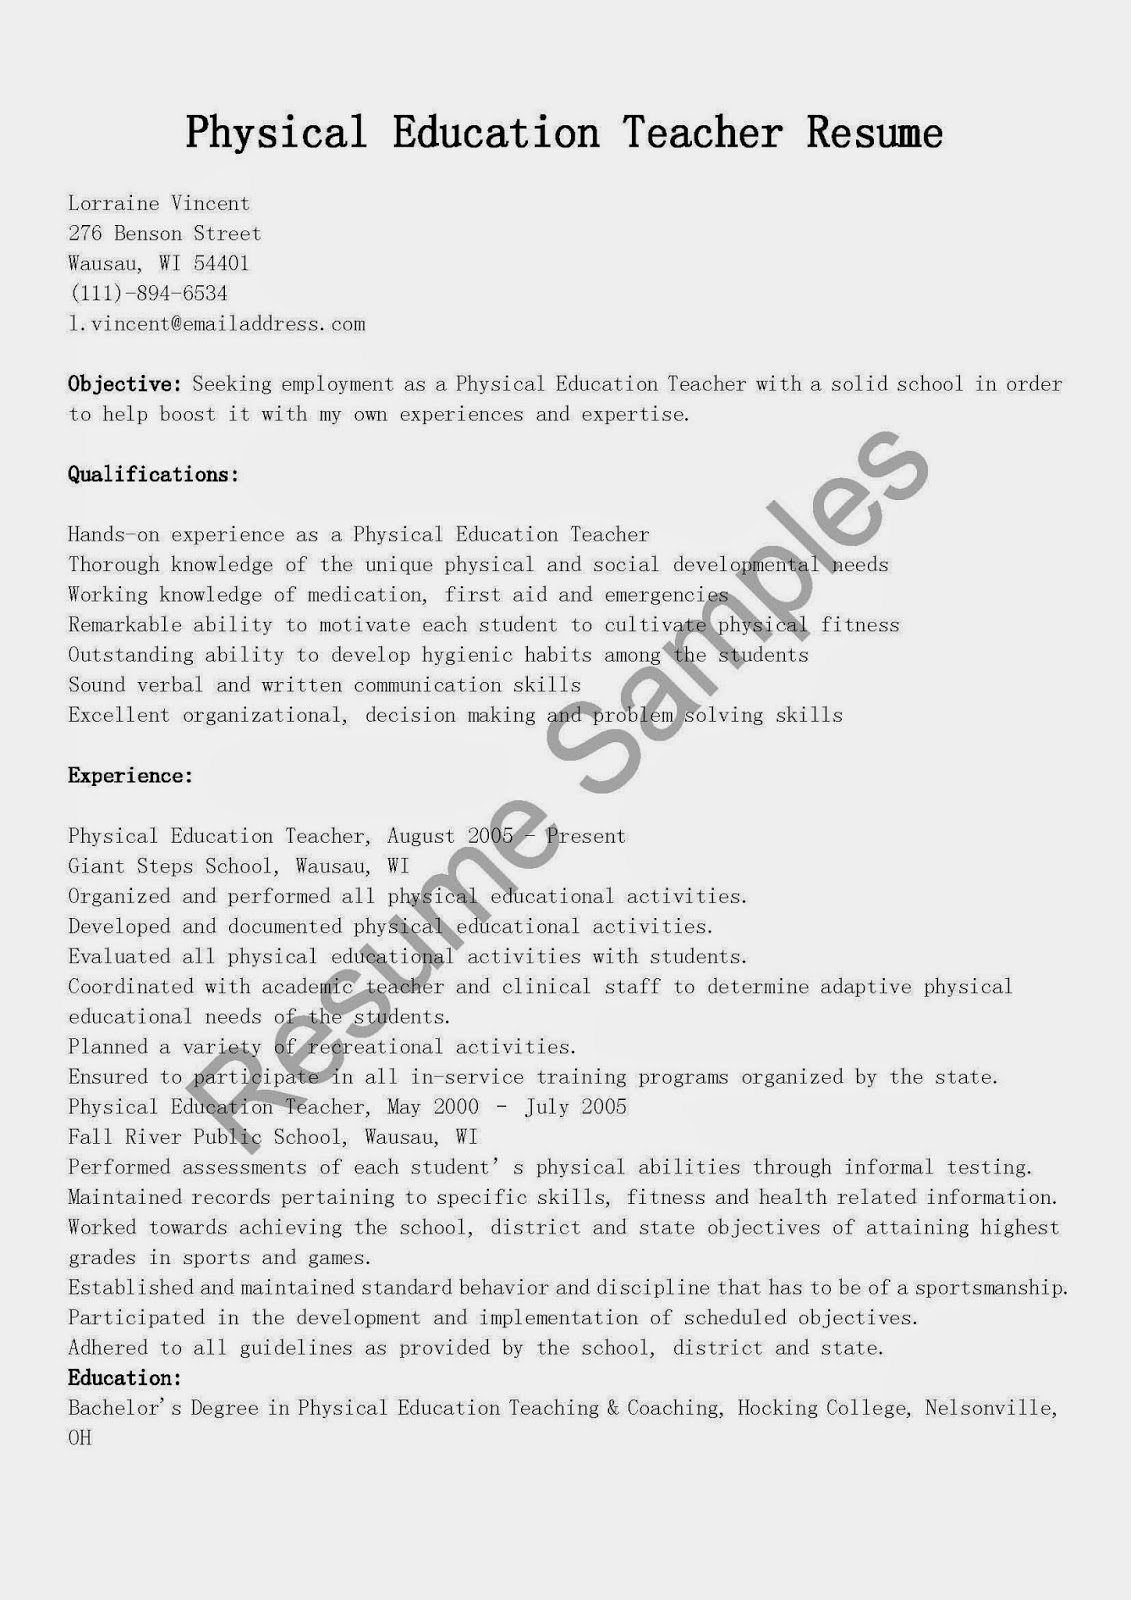 resume samples  physical education teacher resume sample